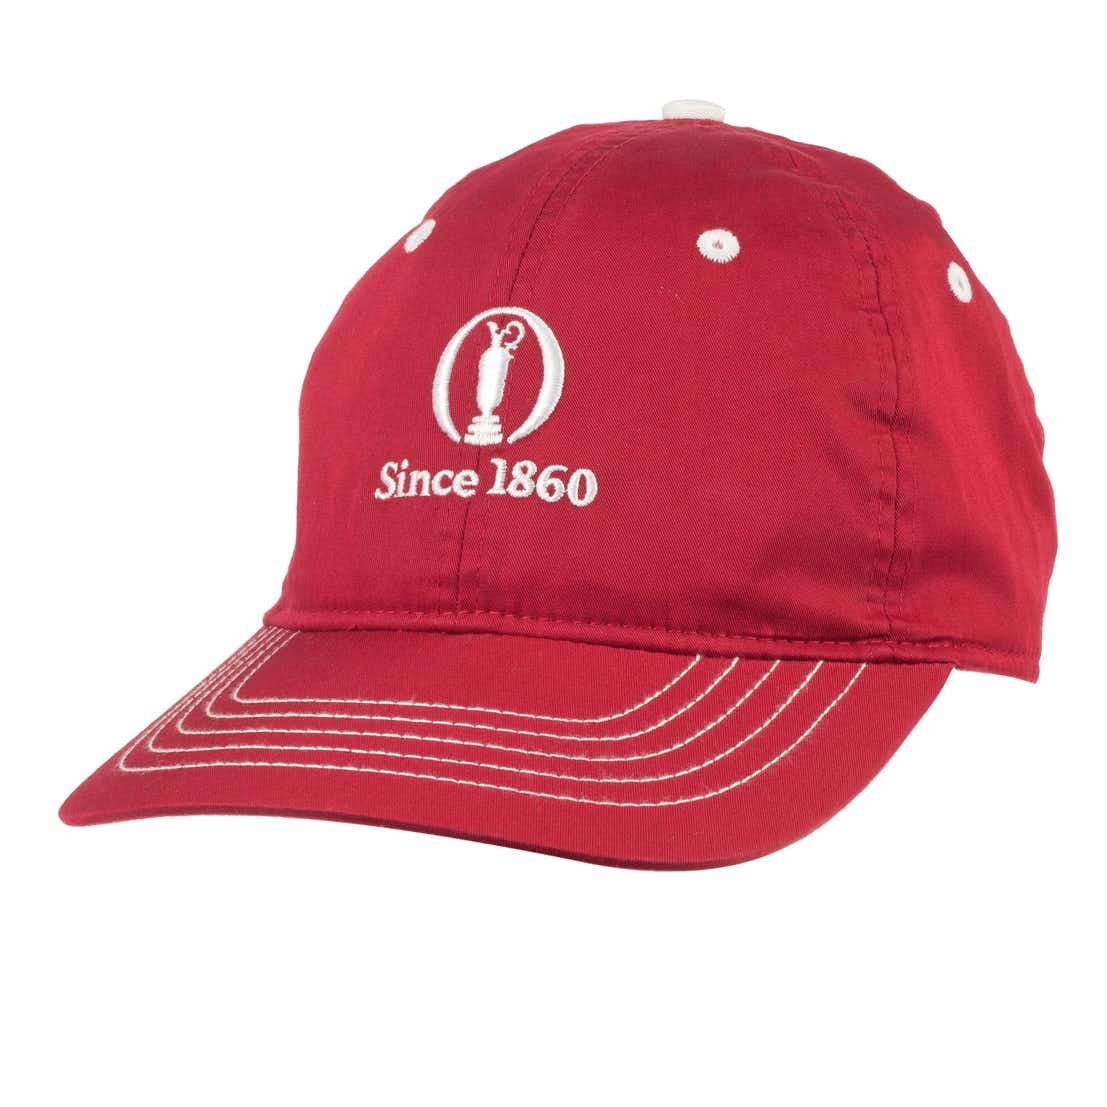 Heritage Since 1860 Baseball Cap - Red